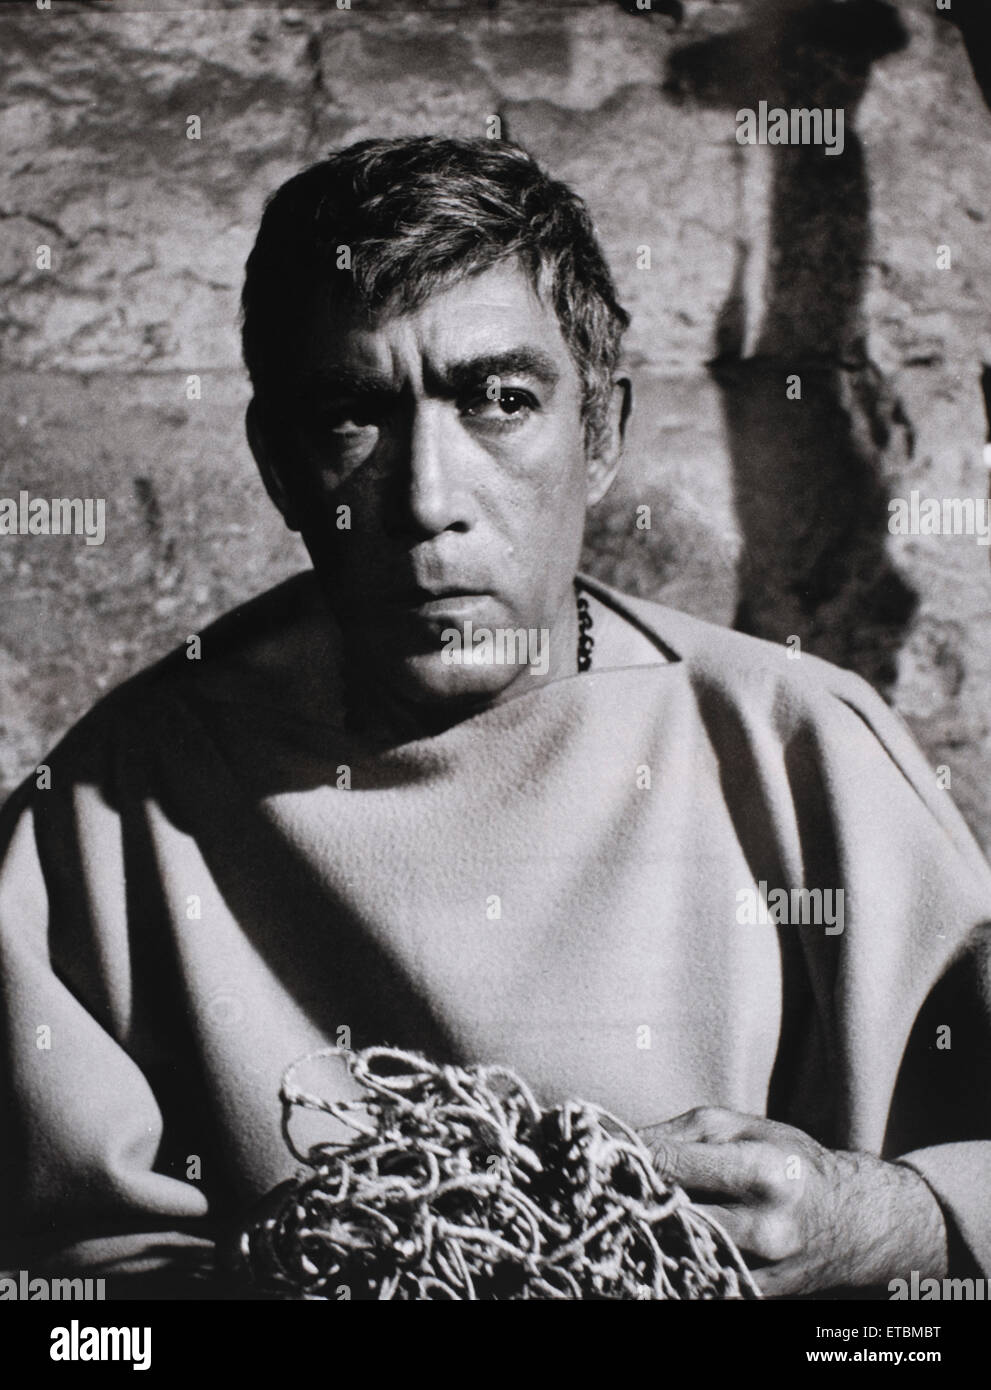 Anthony Quinn, on-set of the Film 'Barabbas', 1961 - Stock Image